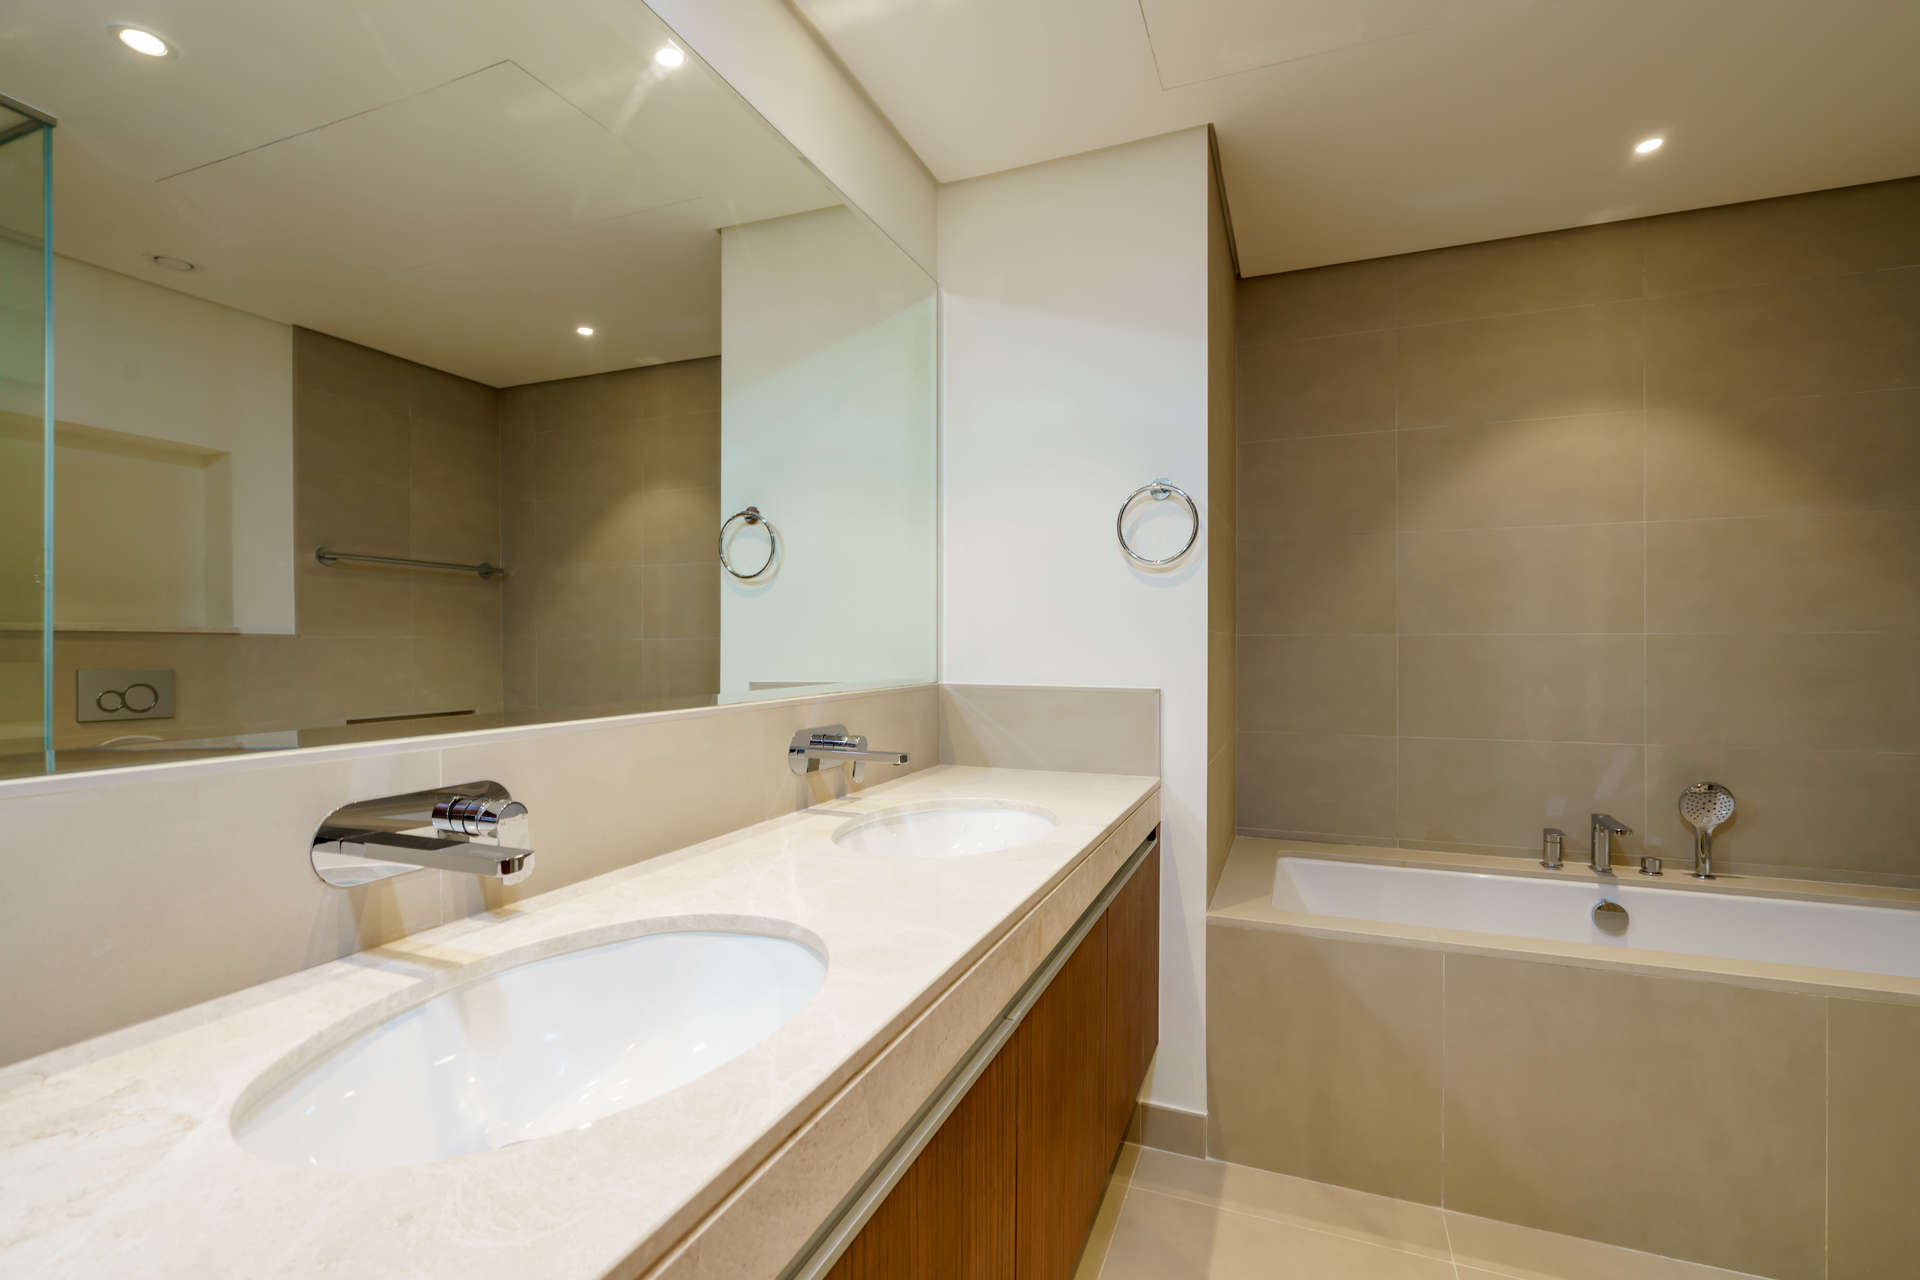 For Rent 2 Bed Apartment(Furnished) in Dubai Creek ...